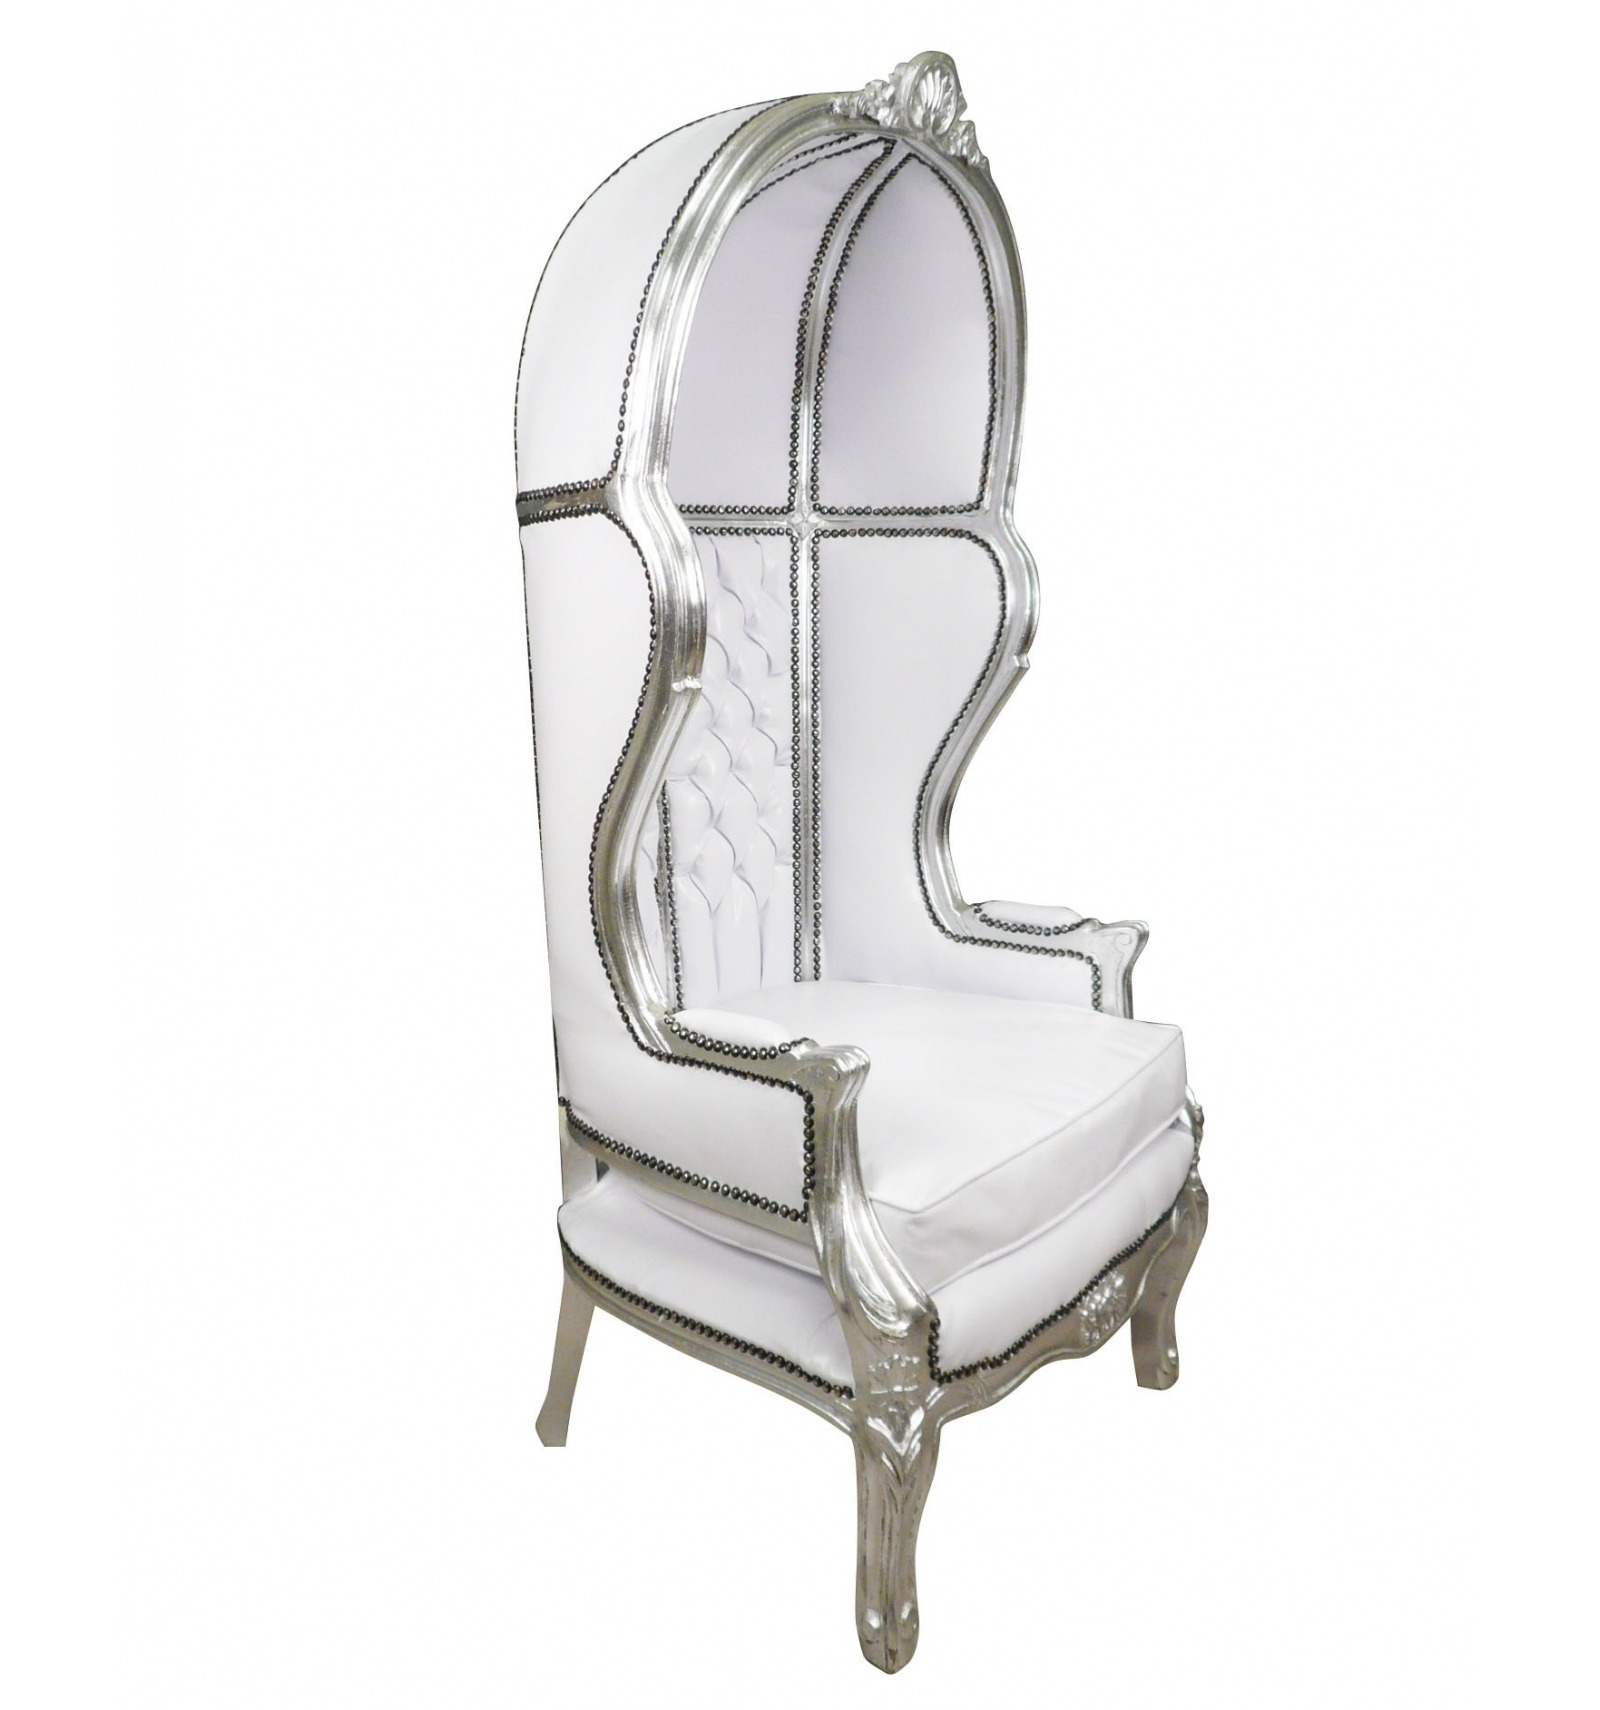 fauteuil carrosse blanc meubles baroques meubles de style. Black Bedroom Furniture Sets. Home Design Ideas